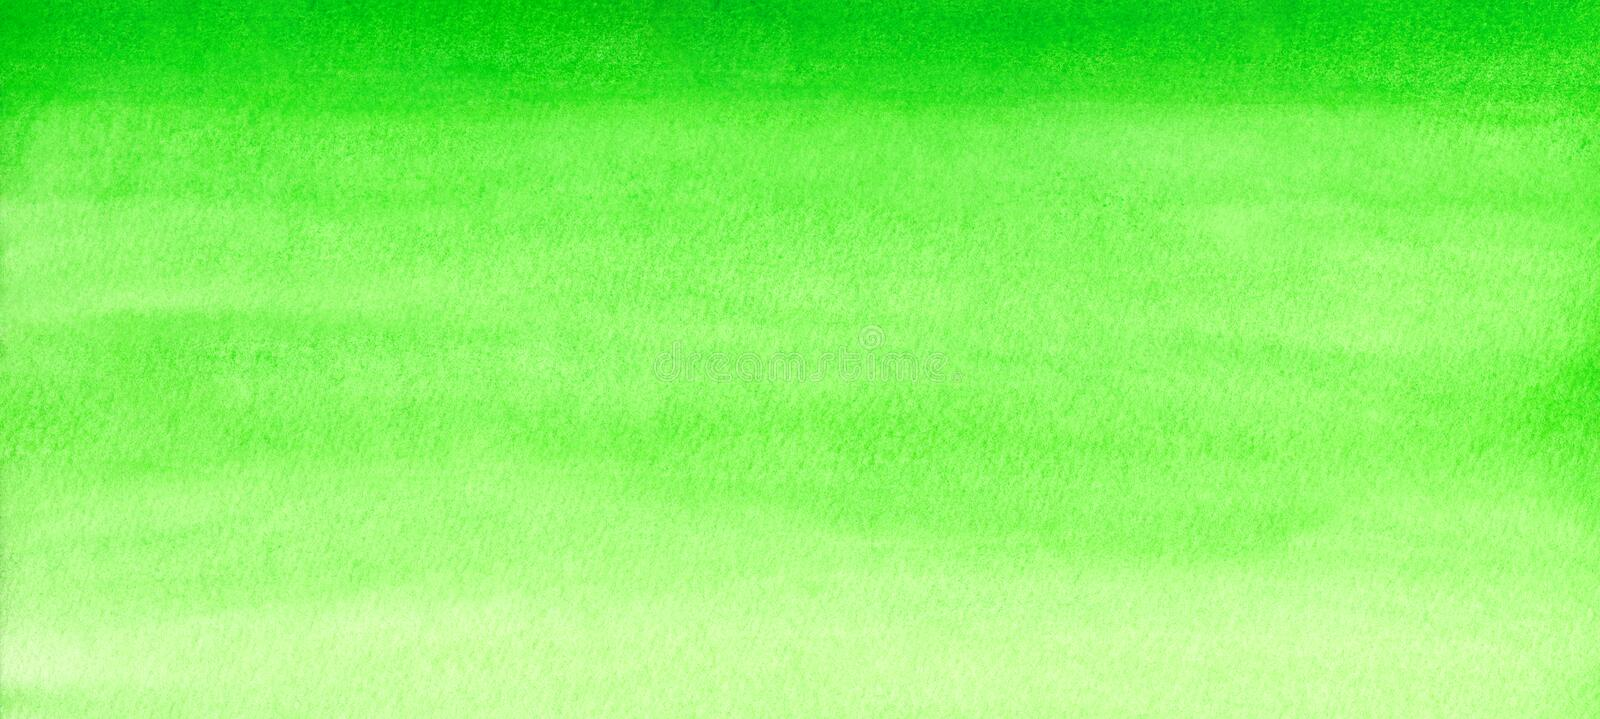 Web banner green watercolor gradient background abstract painted template with paper texture.  stock image